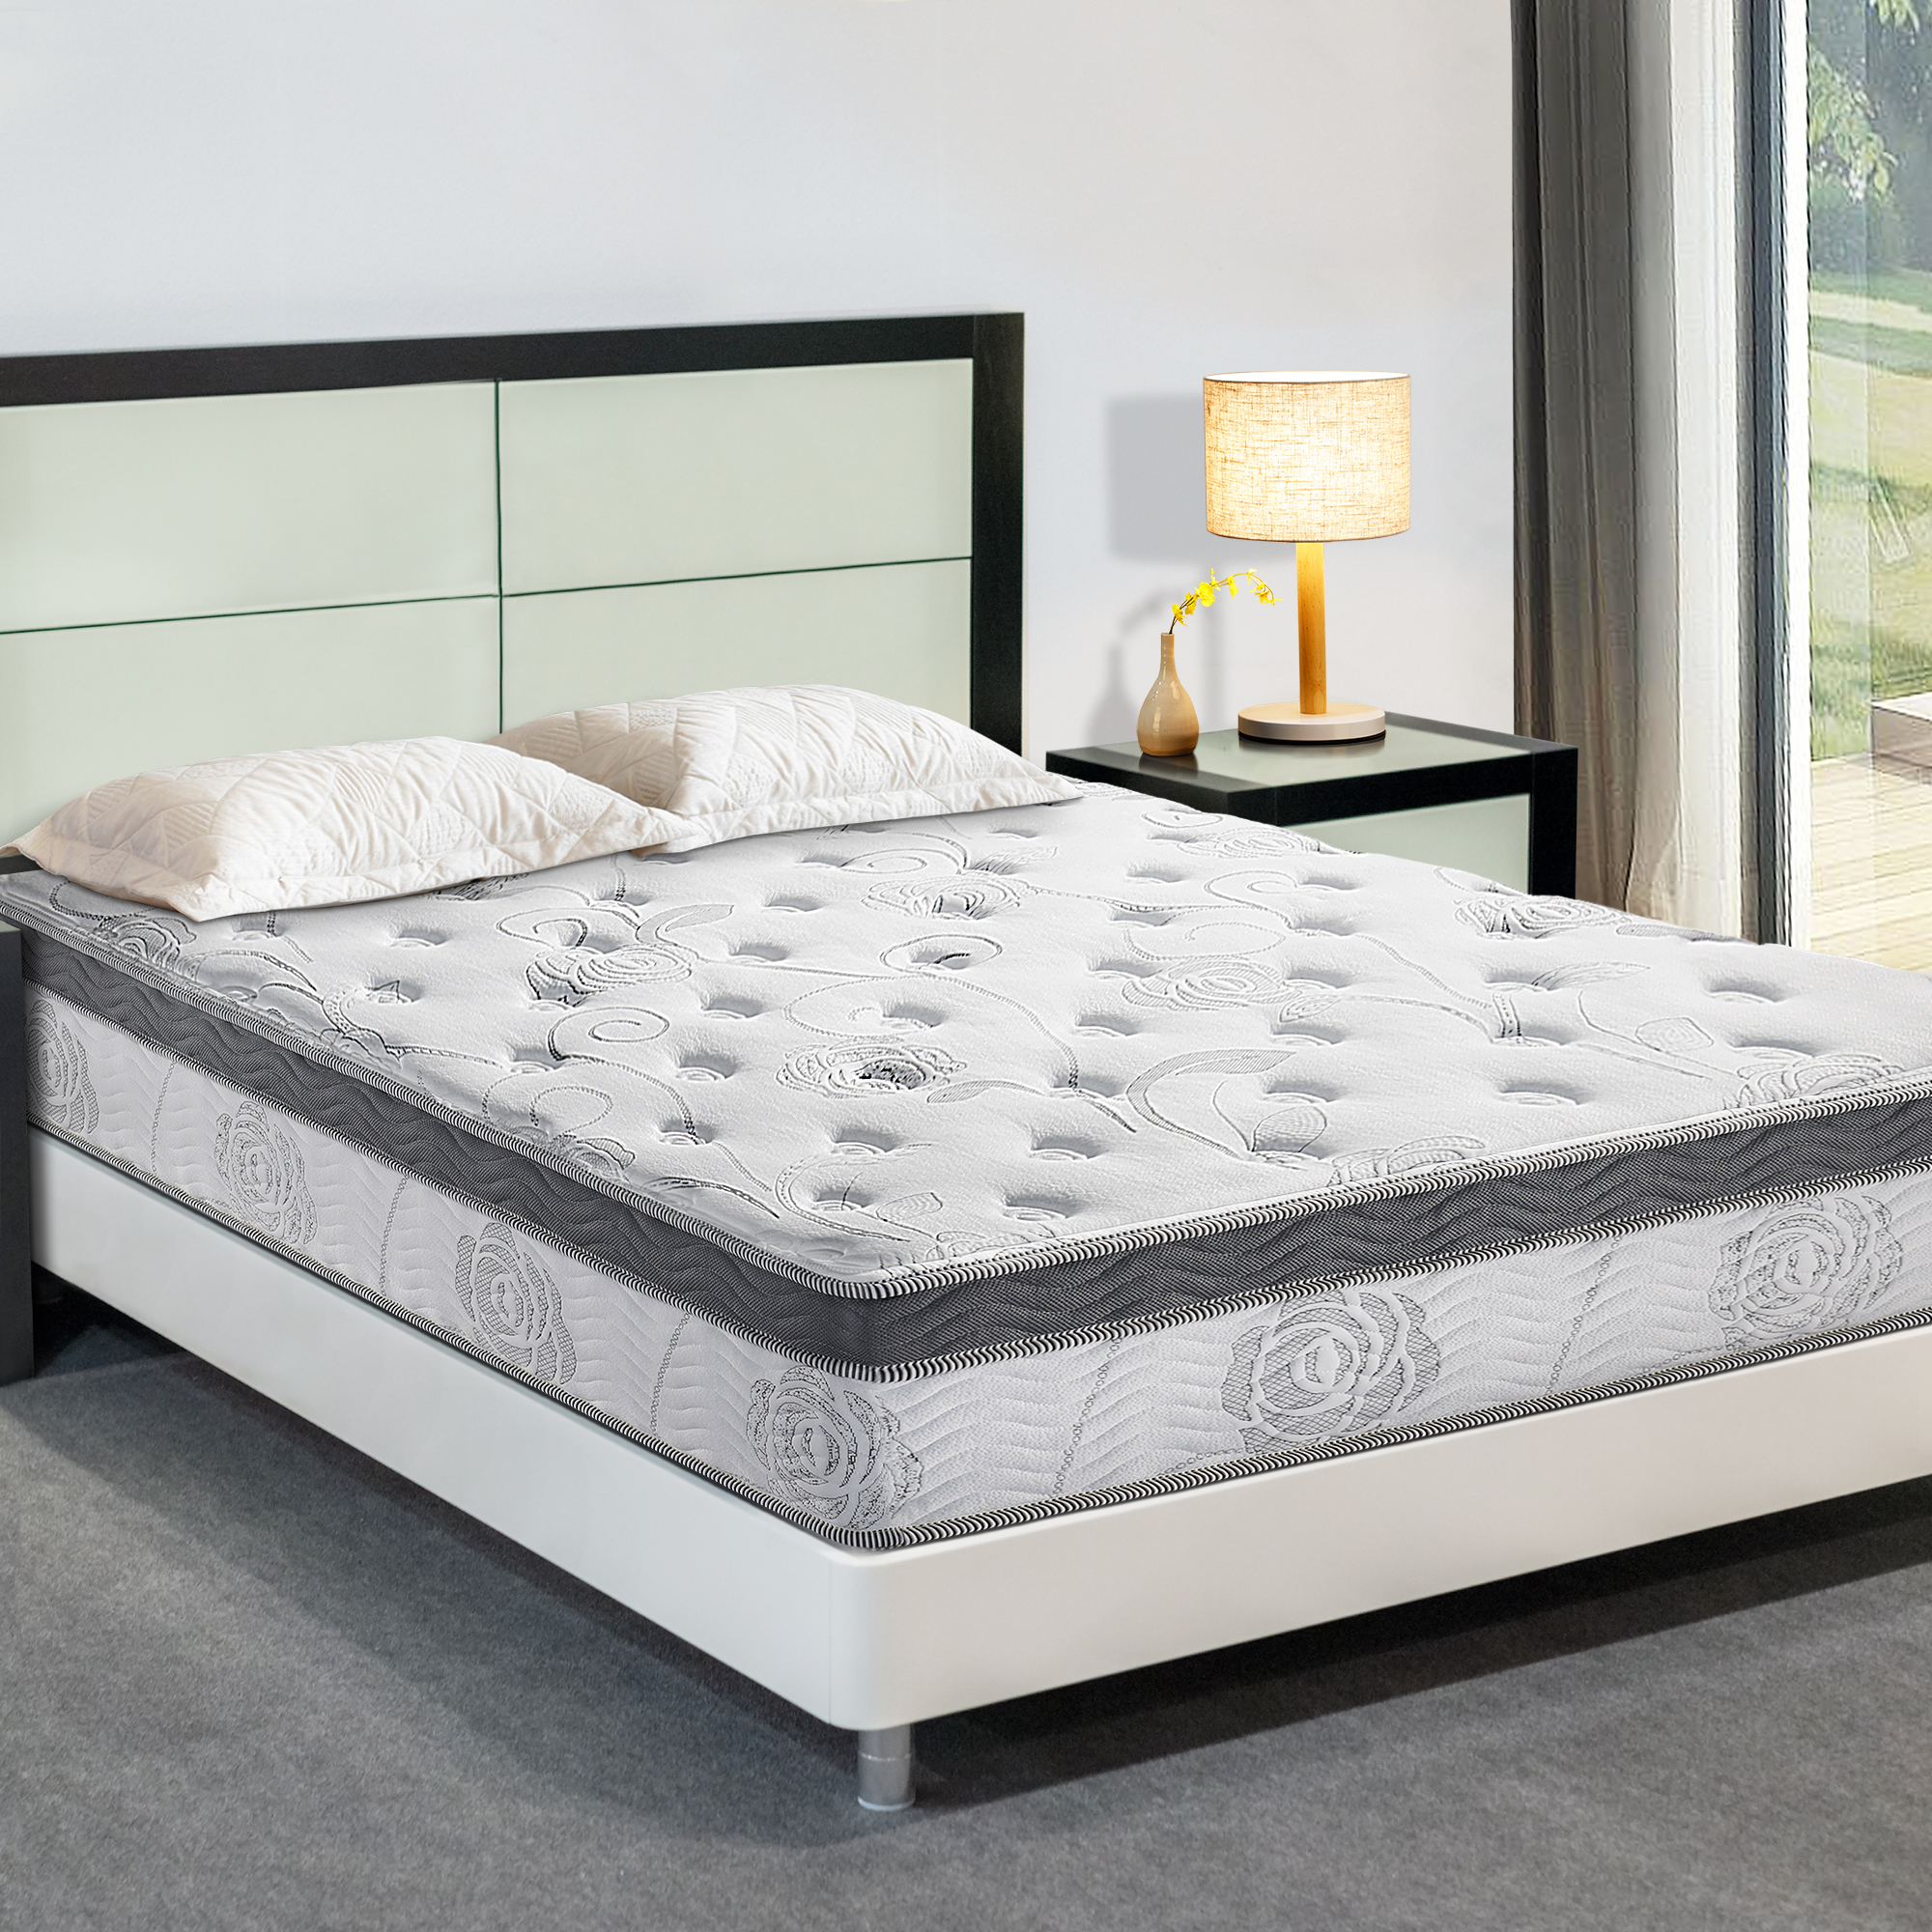 "GranRest 13"" Spring and Pocket Gel Memory Foam Mattress"